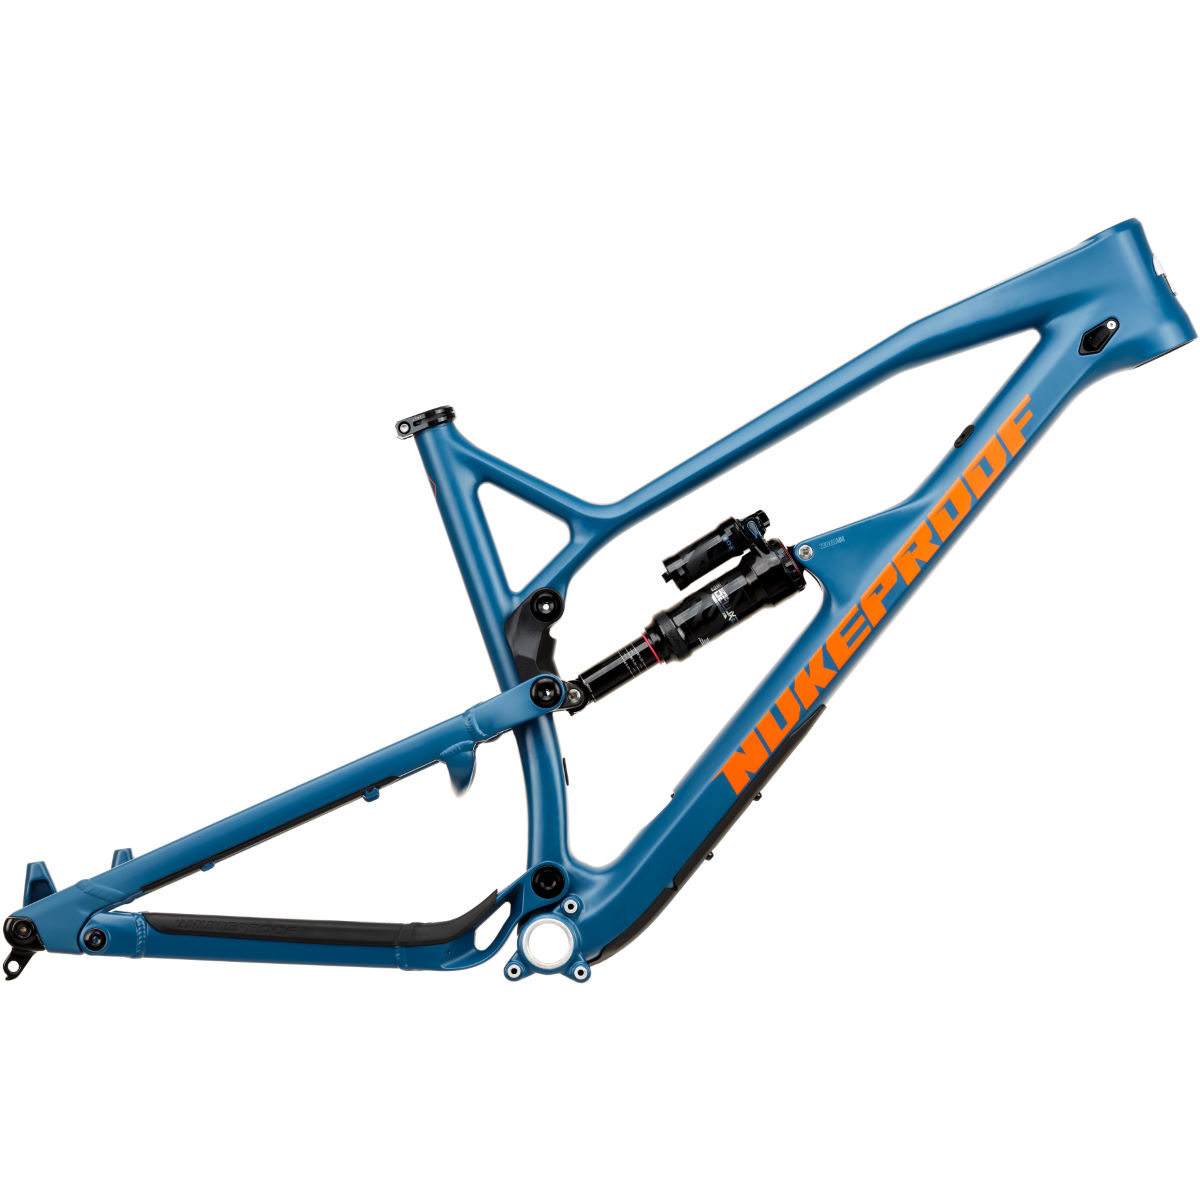 Nukeproof Nukeproof Mega 275 Carbon Mountain Bike Frame (2020)   Full Sus Mountain Bike Frames